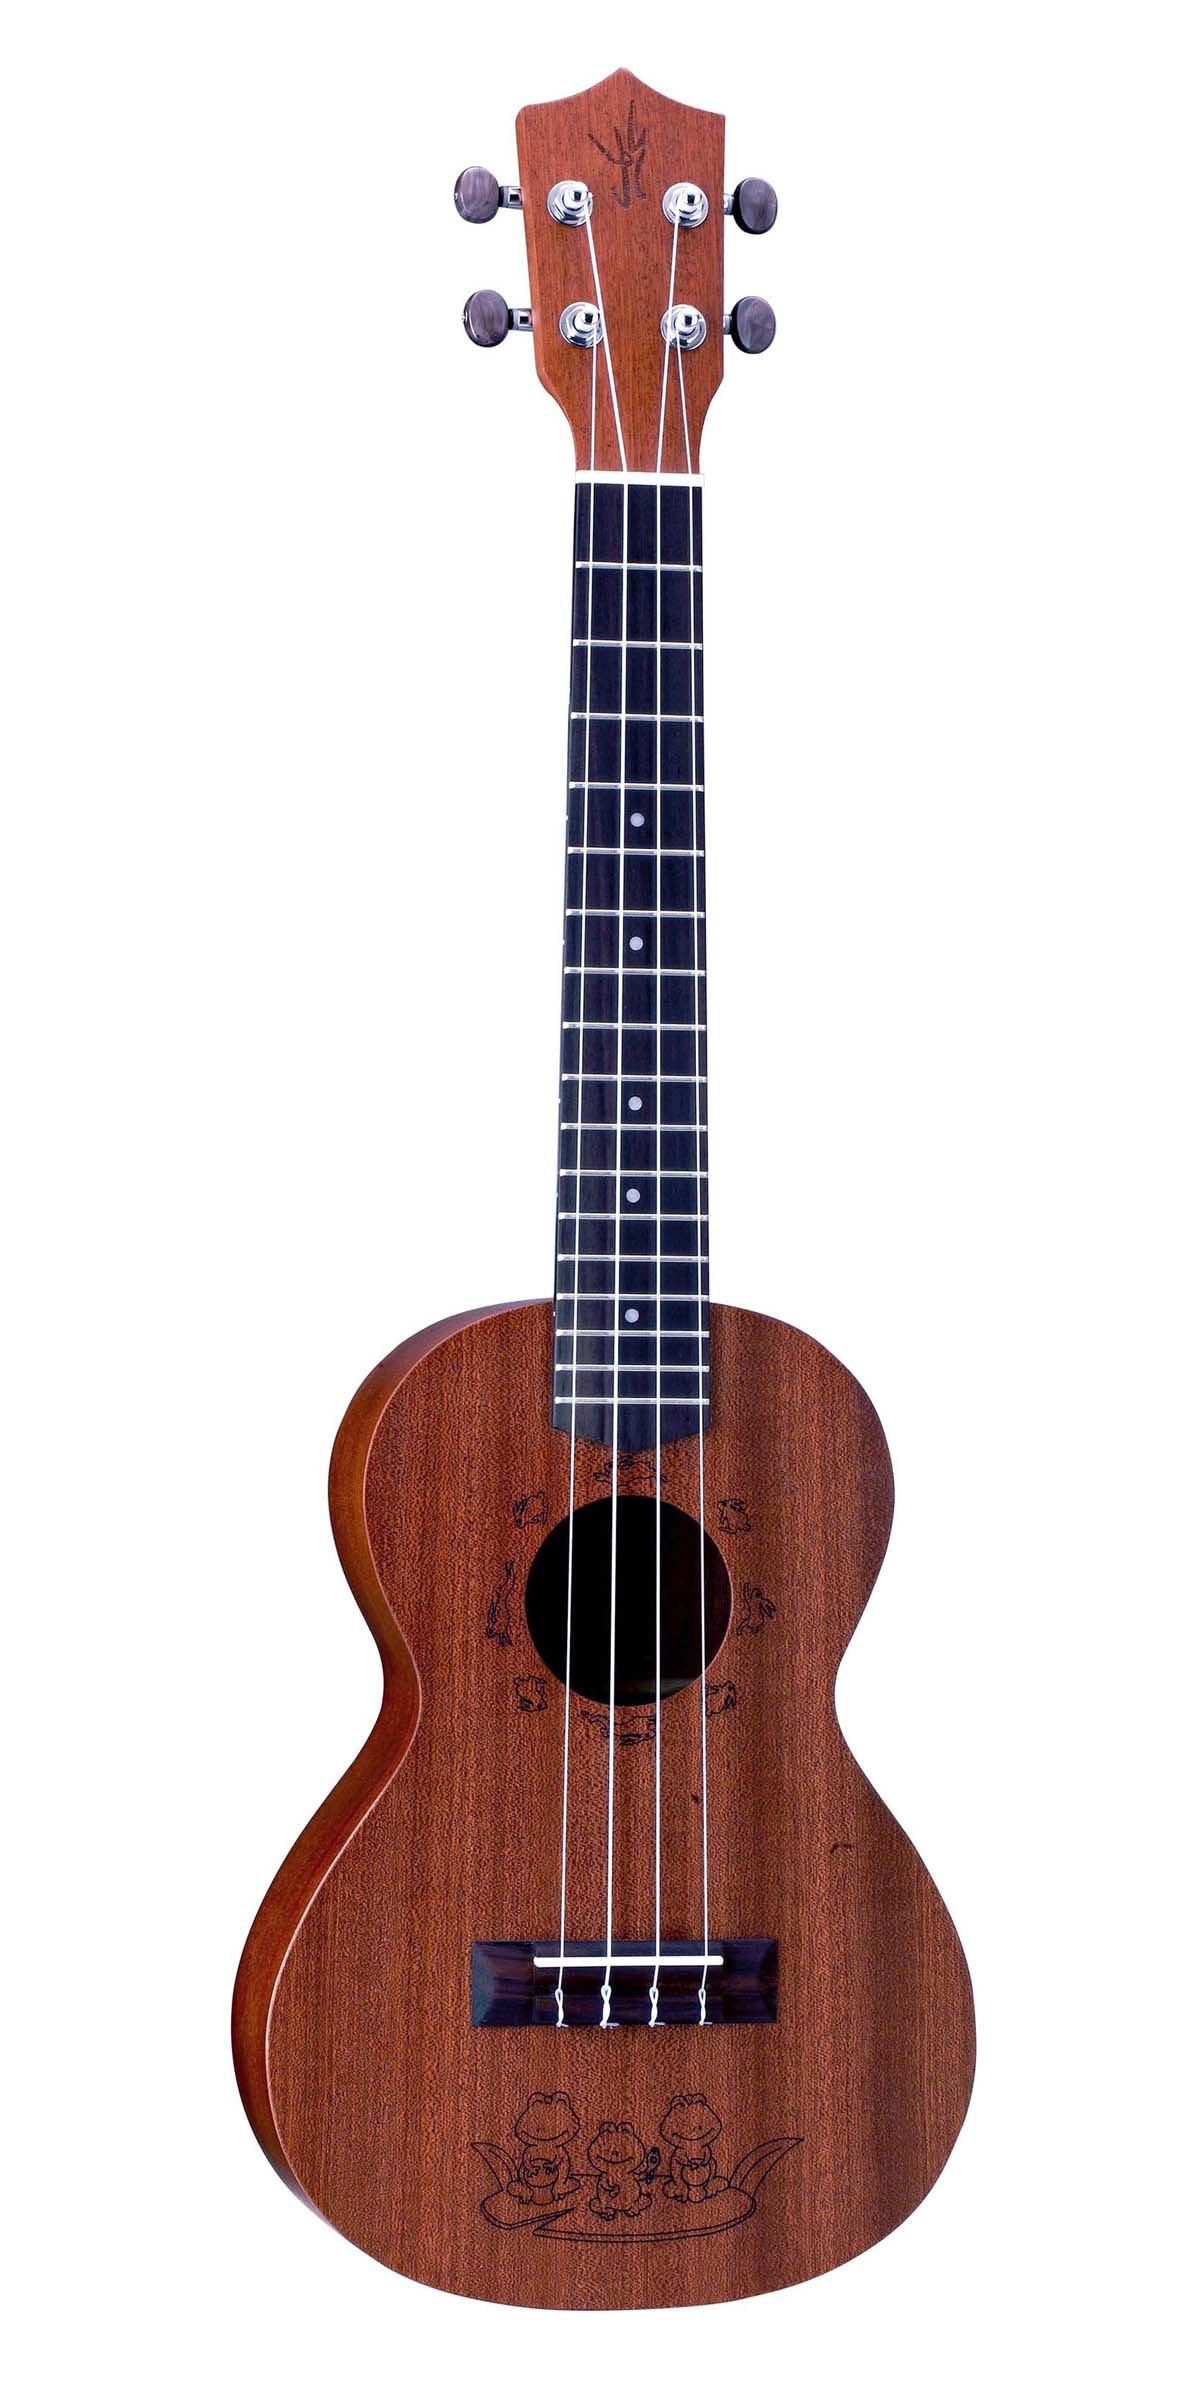 Laser-graving,Sapele Plywood,Tenor Ukulele